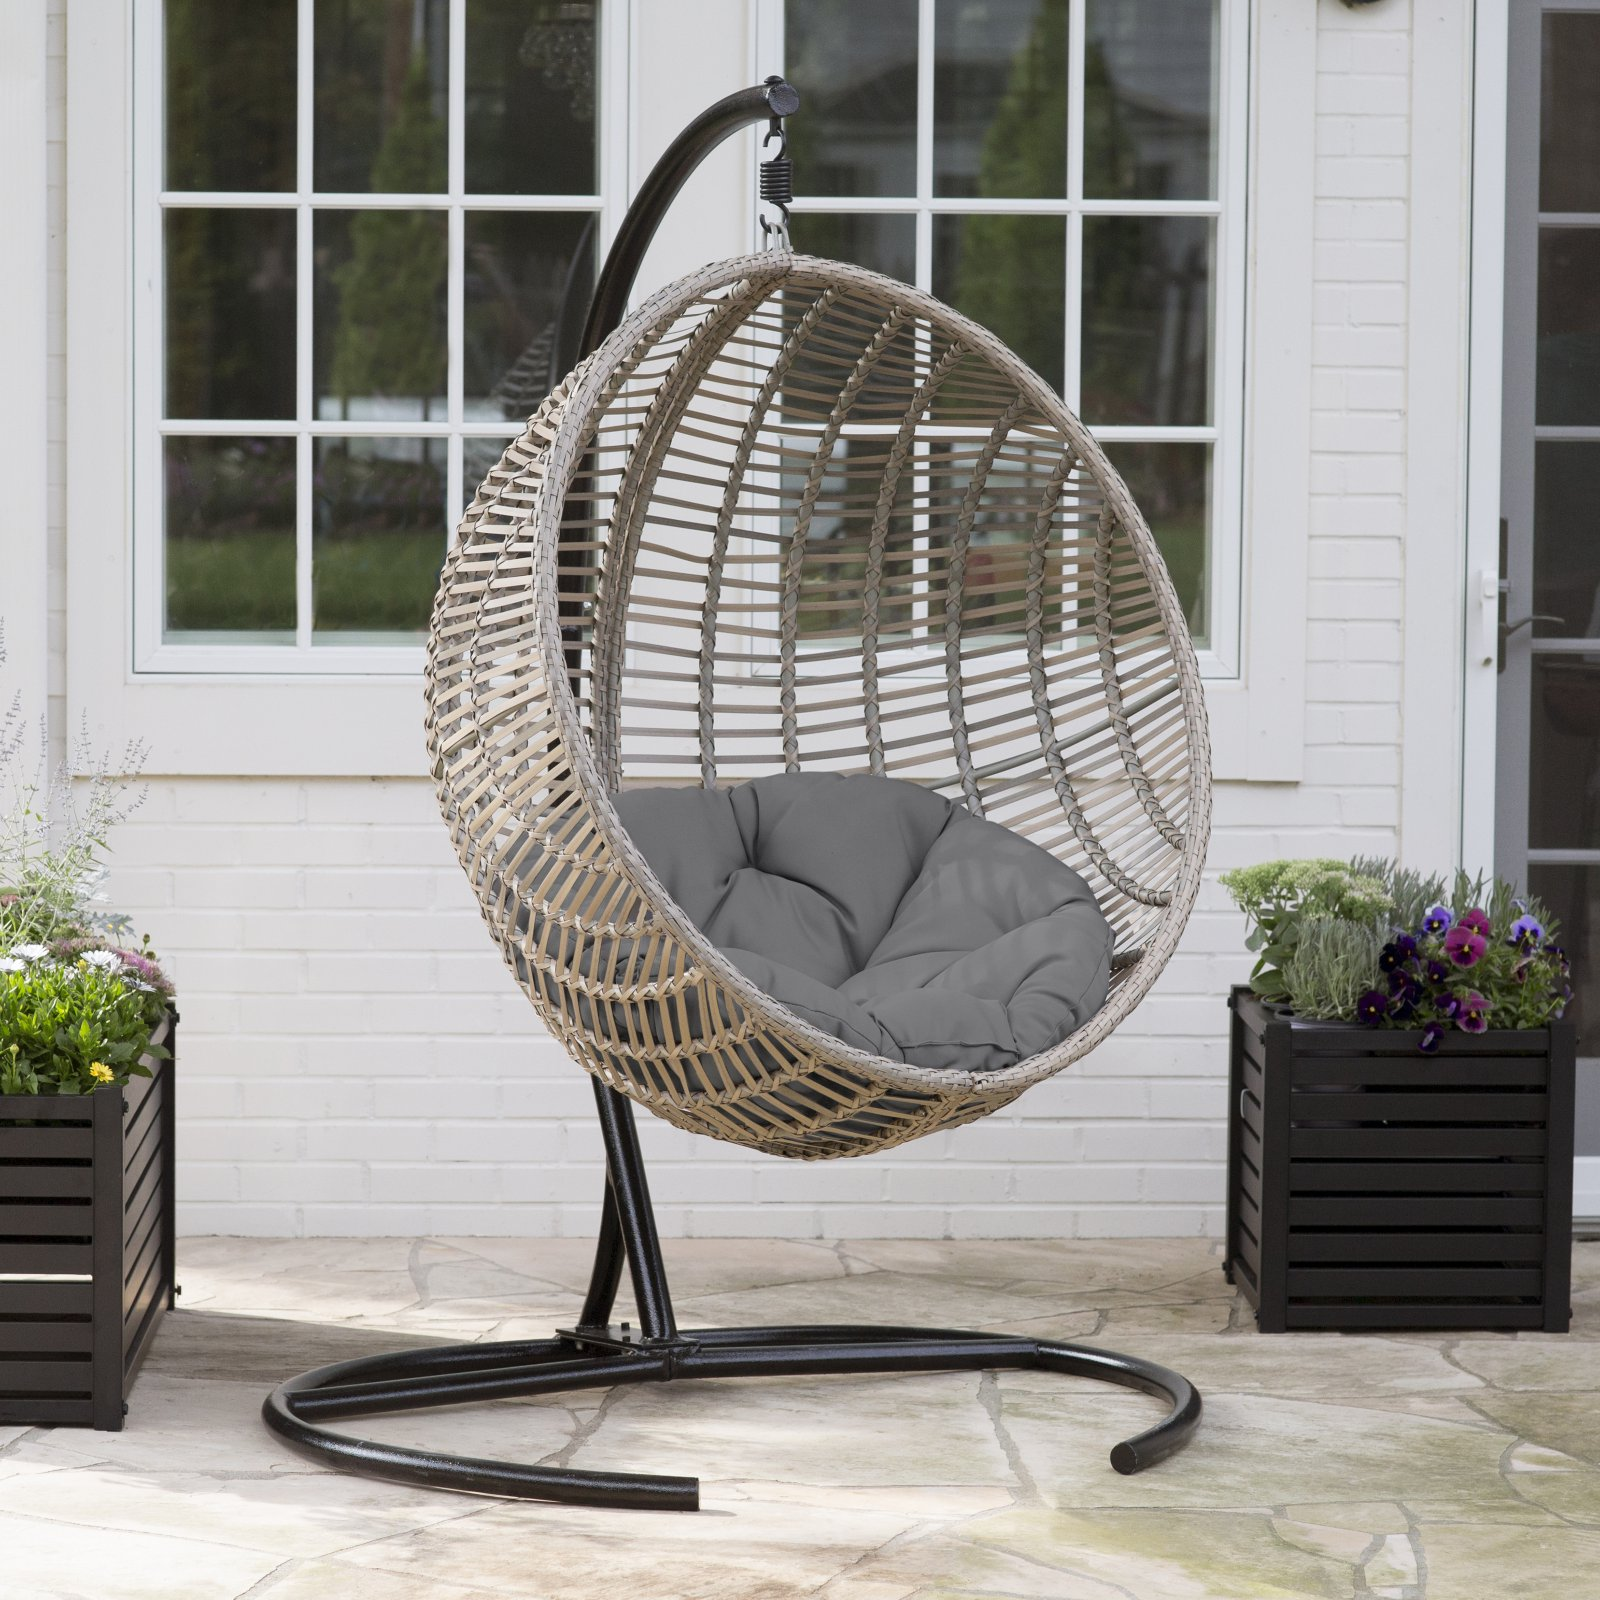 Belham Living Resin Wicker Kambree Rib Hanging Egg Chair with Cushion and Stand